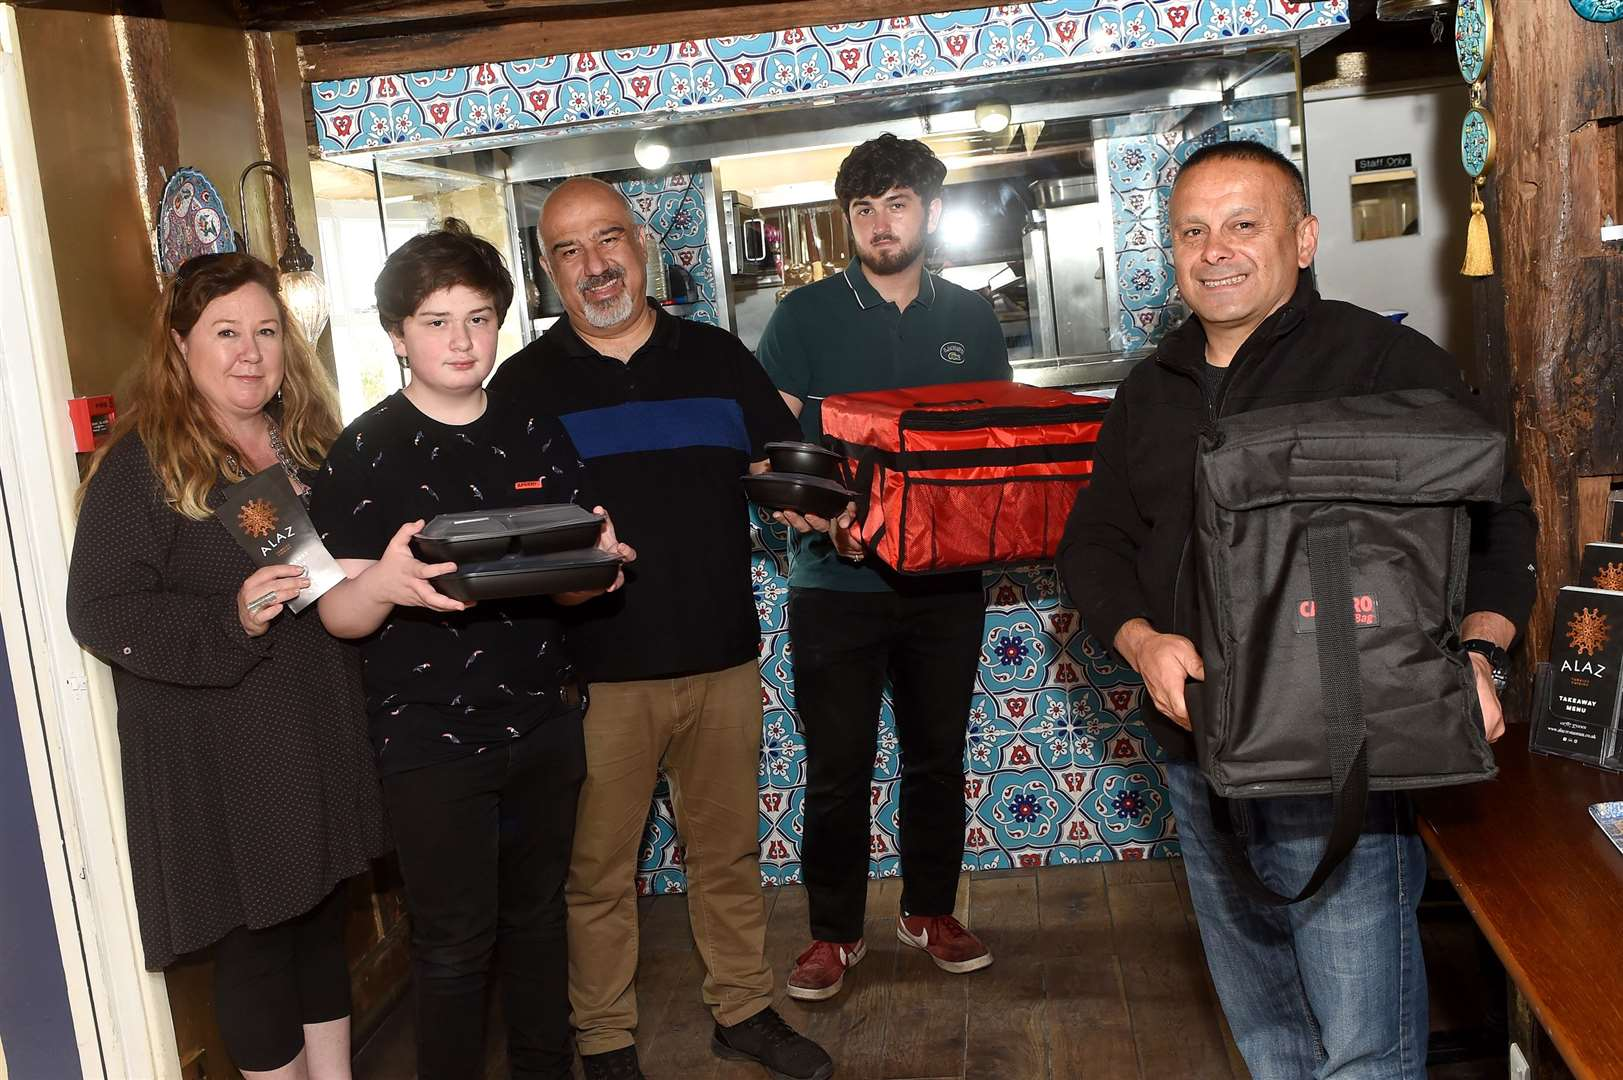 Alaz Turkish Cuisine in Sudbury has found success during the coronavirus lockdown by launching a takeaway service...Pictured: Susan Miller Tezel, Kaya Miller Tezel, Cengiz Tezel, Luka Uğurlu and Ali Yildiz....PICTURE: Mecha Morton .... (36343039)